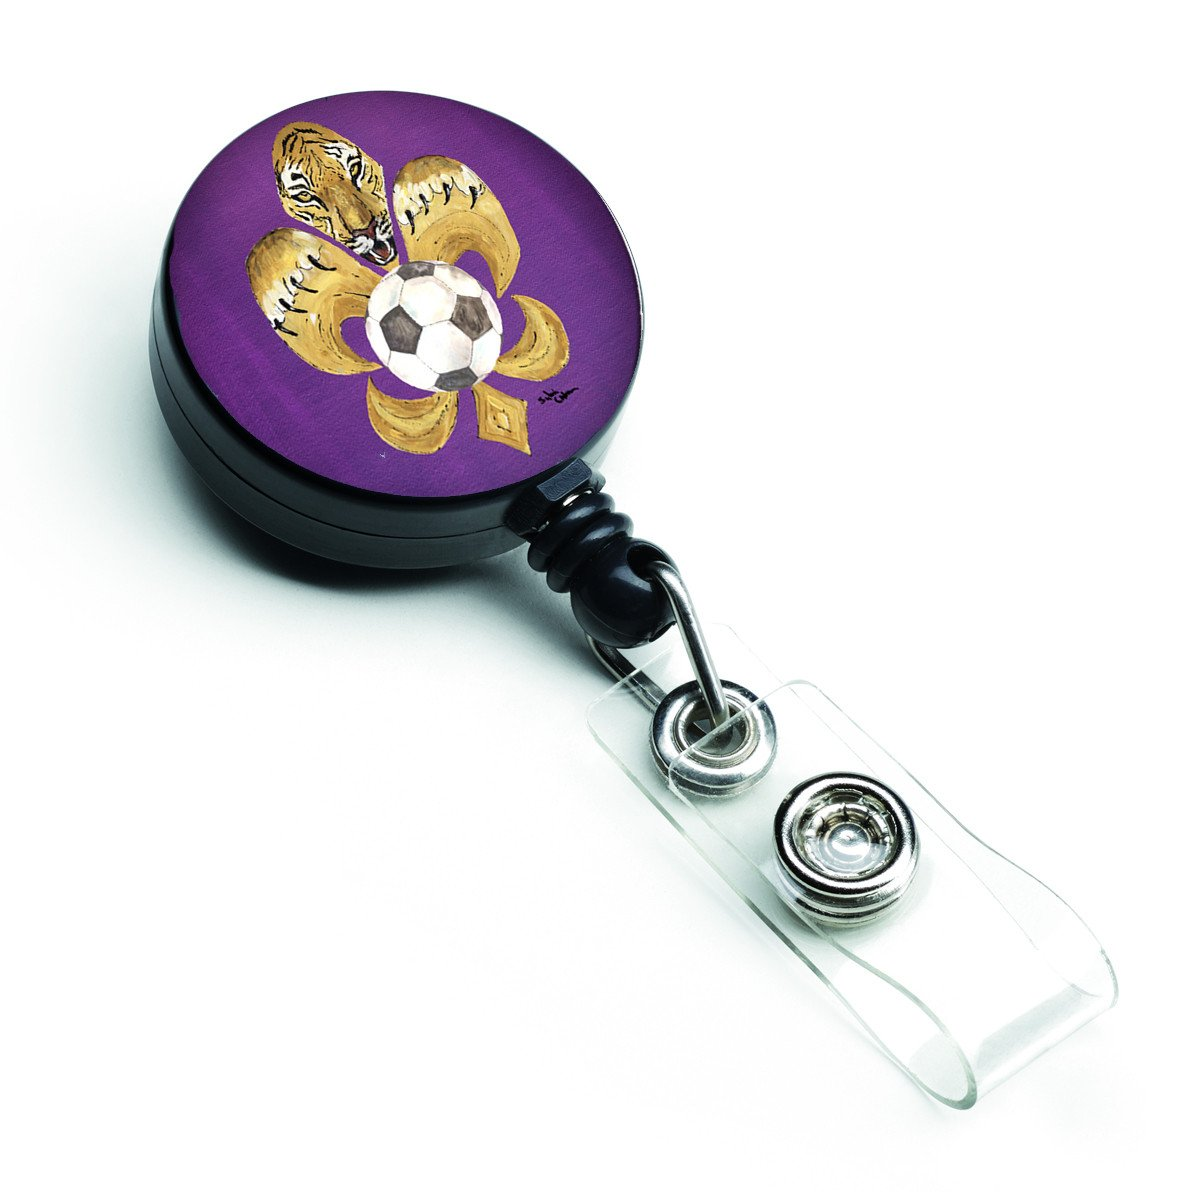 Tiger Fleur de lis Soccer Retractable Badge Reel 8477BR by Caroline's Treasures